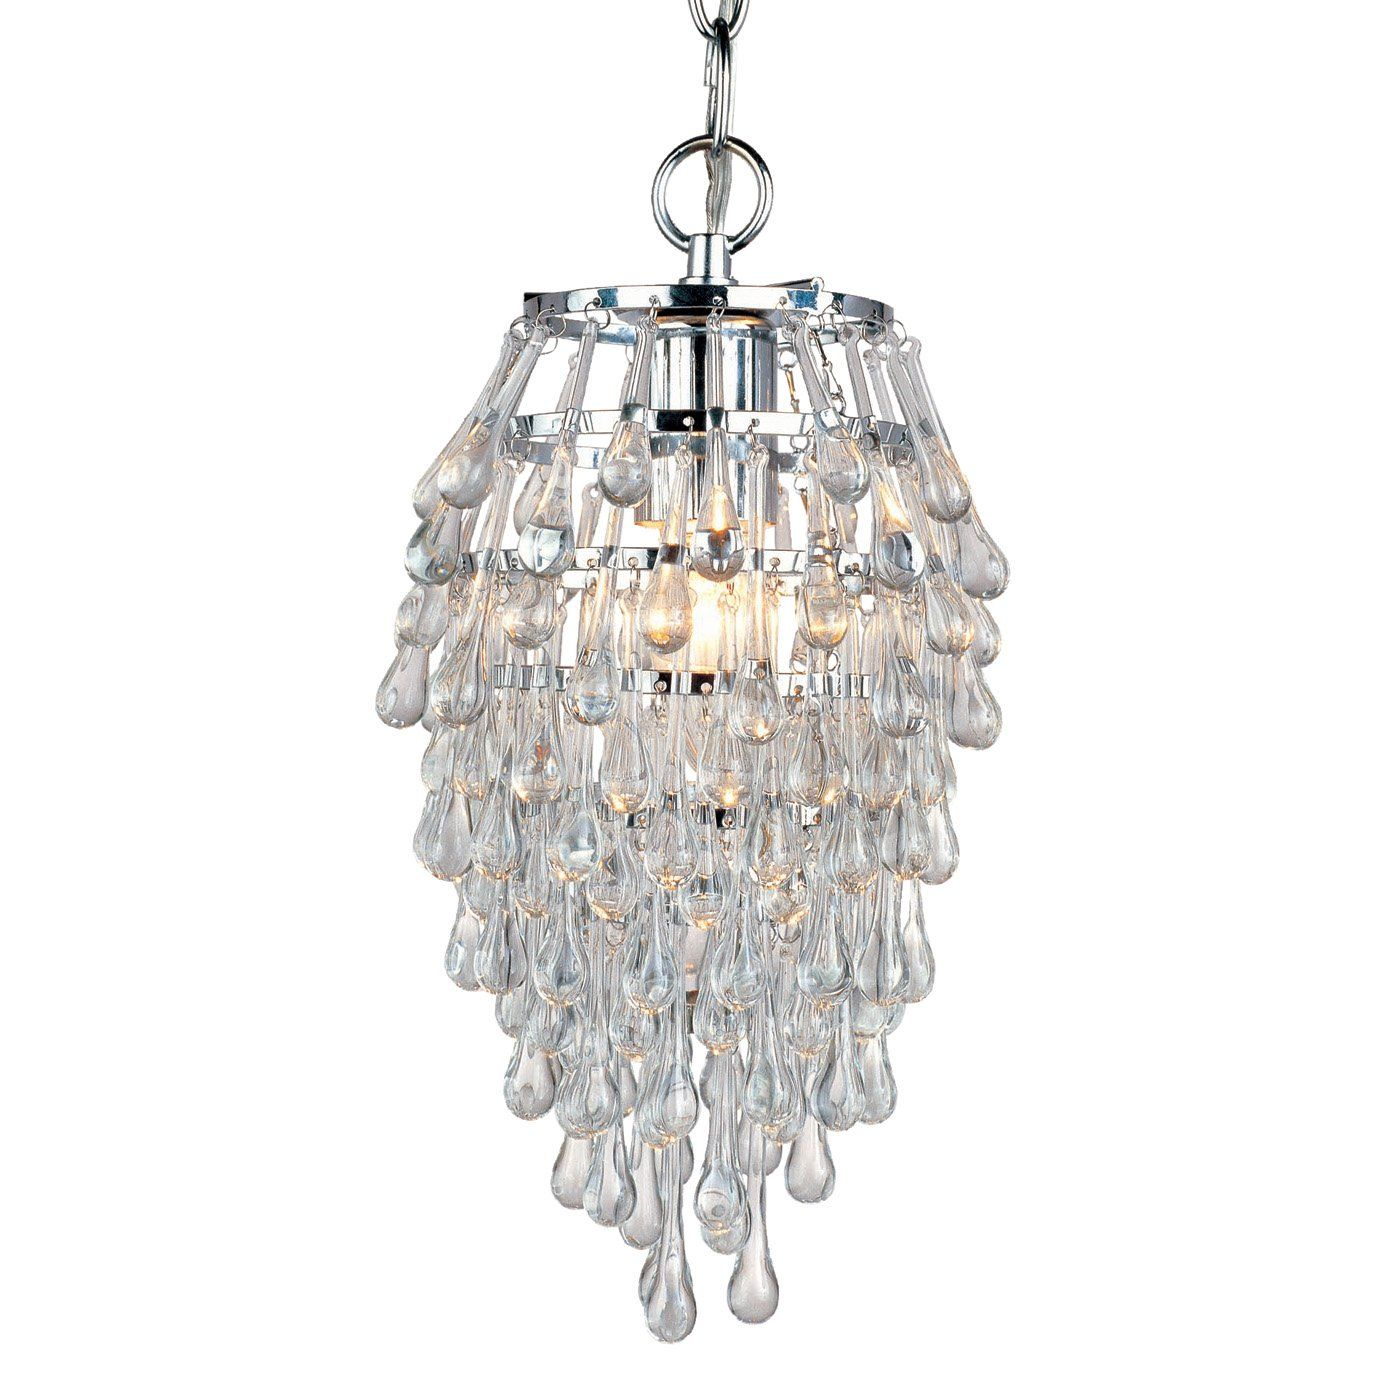 Crystal Chandeliers Mini Crystal Teardrop Chandelier Lighting Sale - Teardrop chandelier crystals